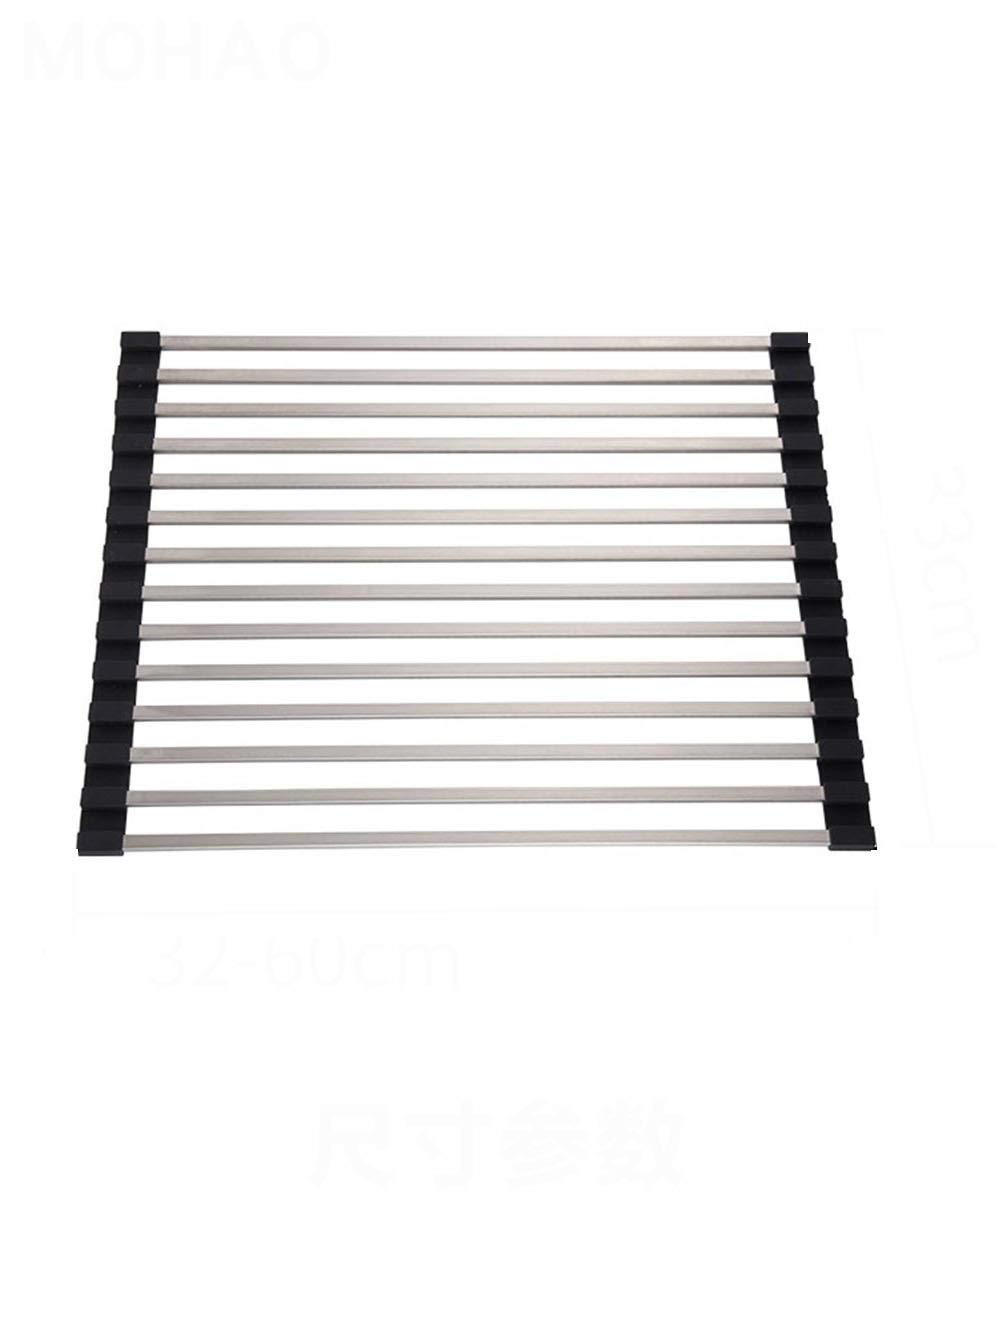 Foldable Kitchen Sink Drain Basket Stainless Steel Sink Drain Rack Dish Rack Easy To Clean Load-bearing Easy Folding Multi-size (Size : 35cm33CM) by Xiguan